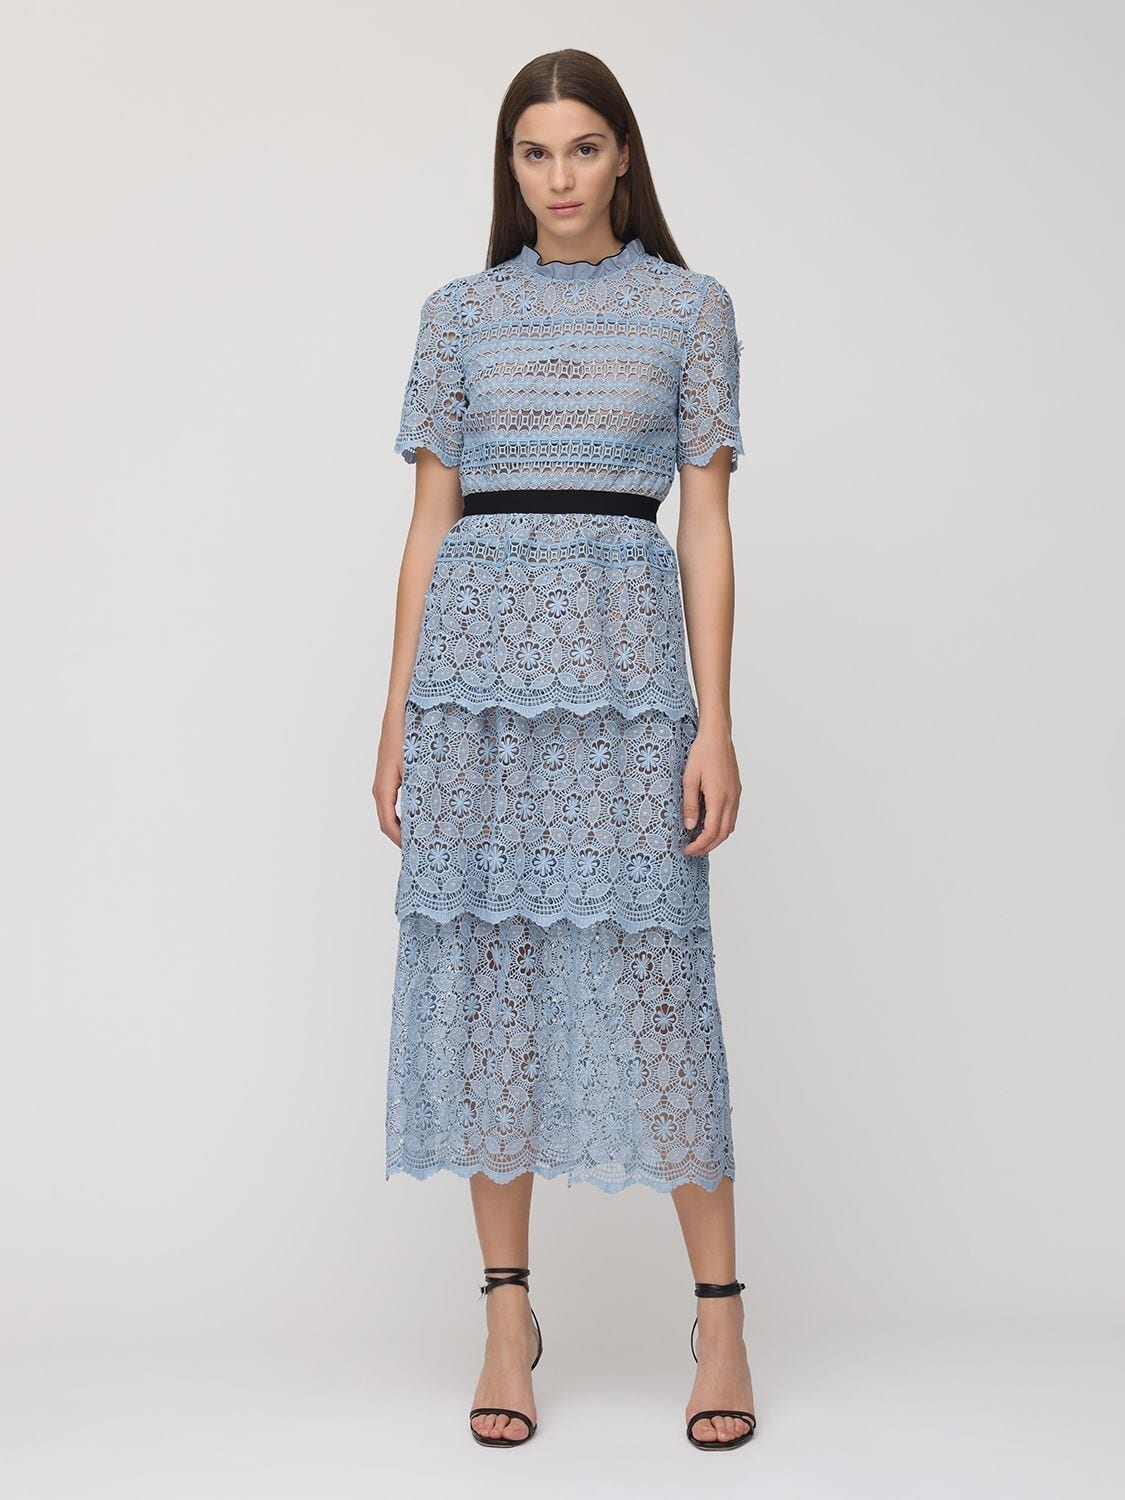 SELF-PORTRAIT Layered Lace Long Dress